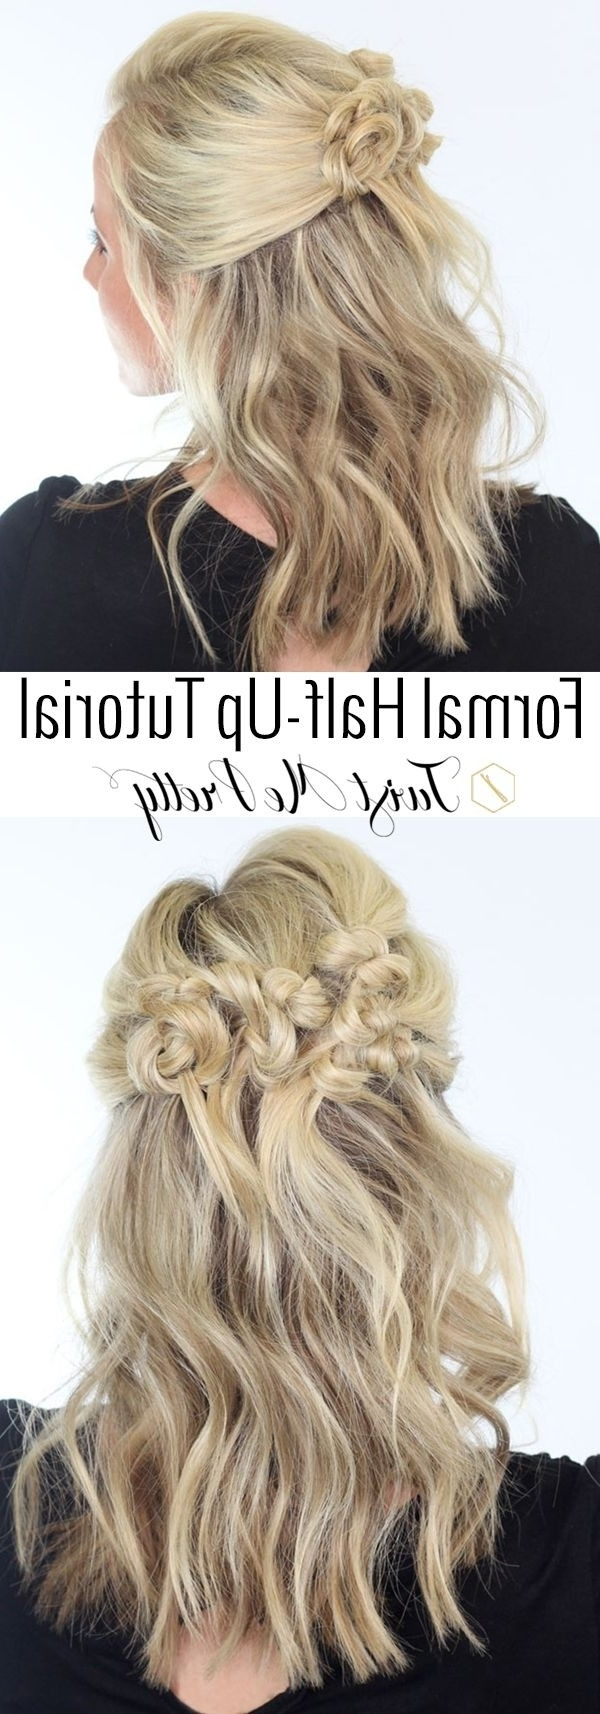 20 Great Hairstyles For Medium Length Hair 2016 – Pretty Designs For Half Hair Updos For Medium Length Hair (View 4 of 15)